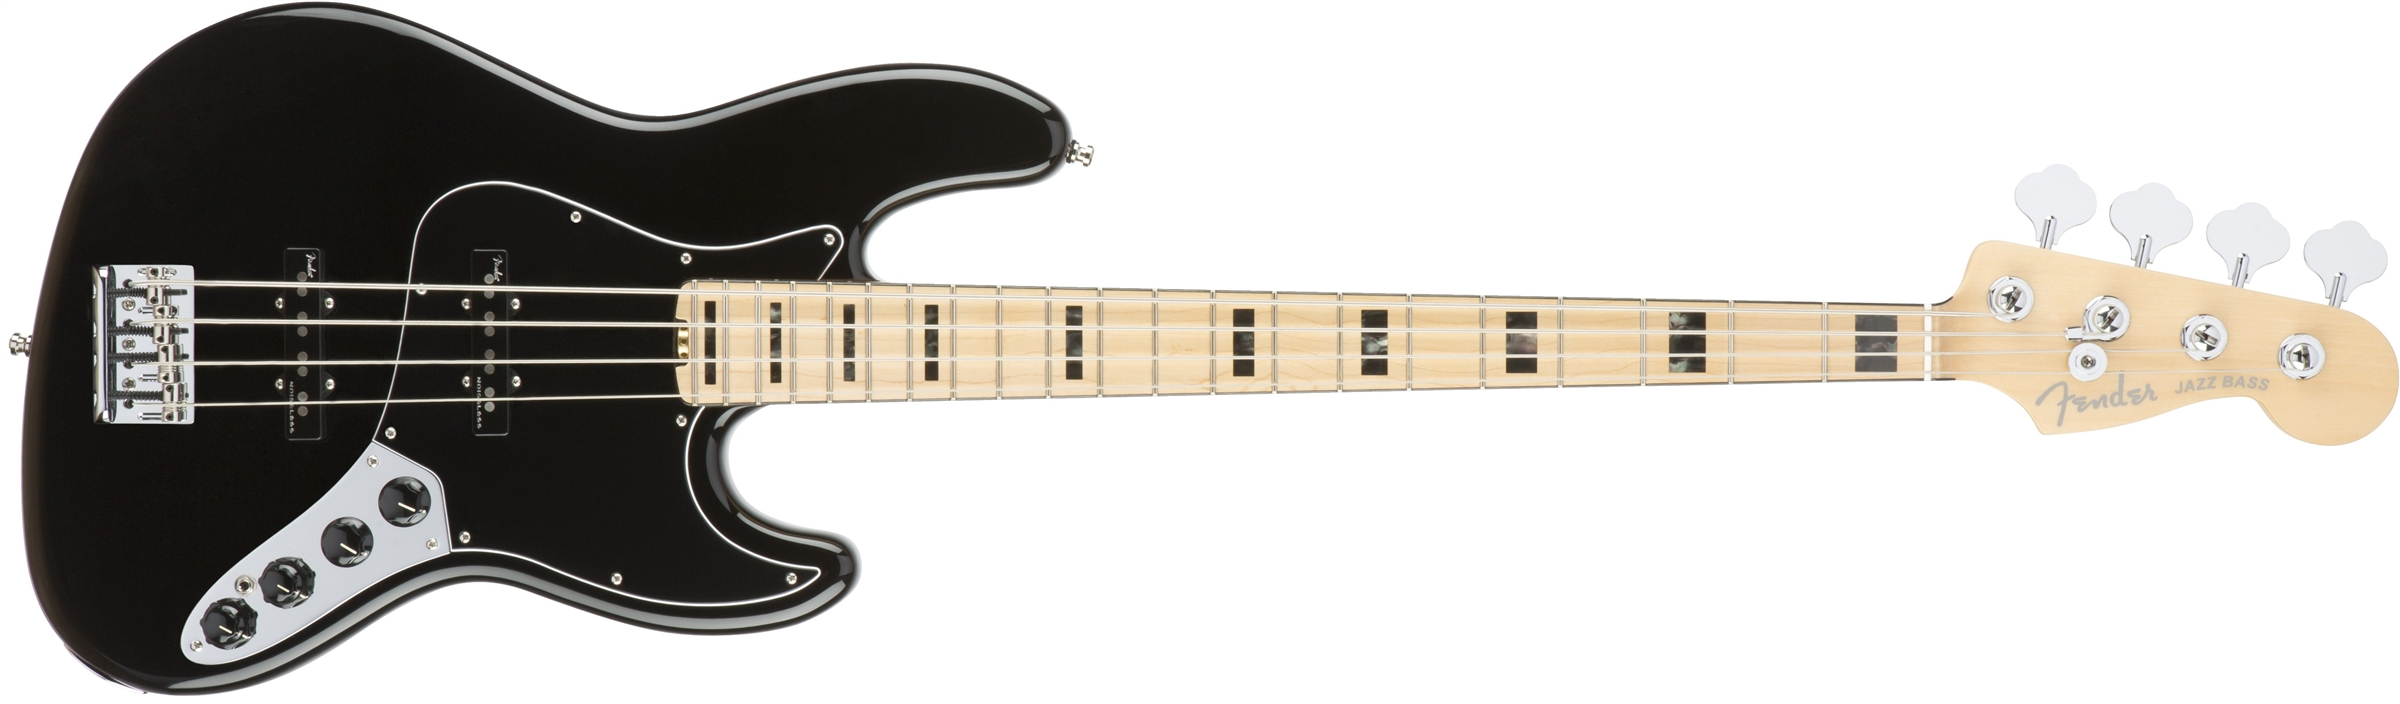 FENDER American Elite Jazz Bass MN Black  0197002706